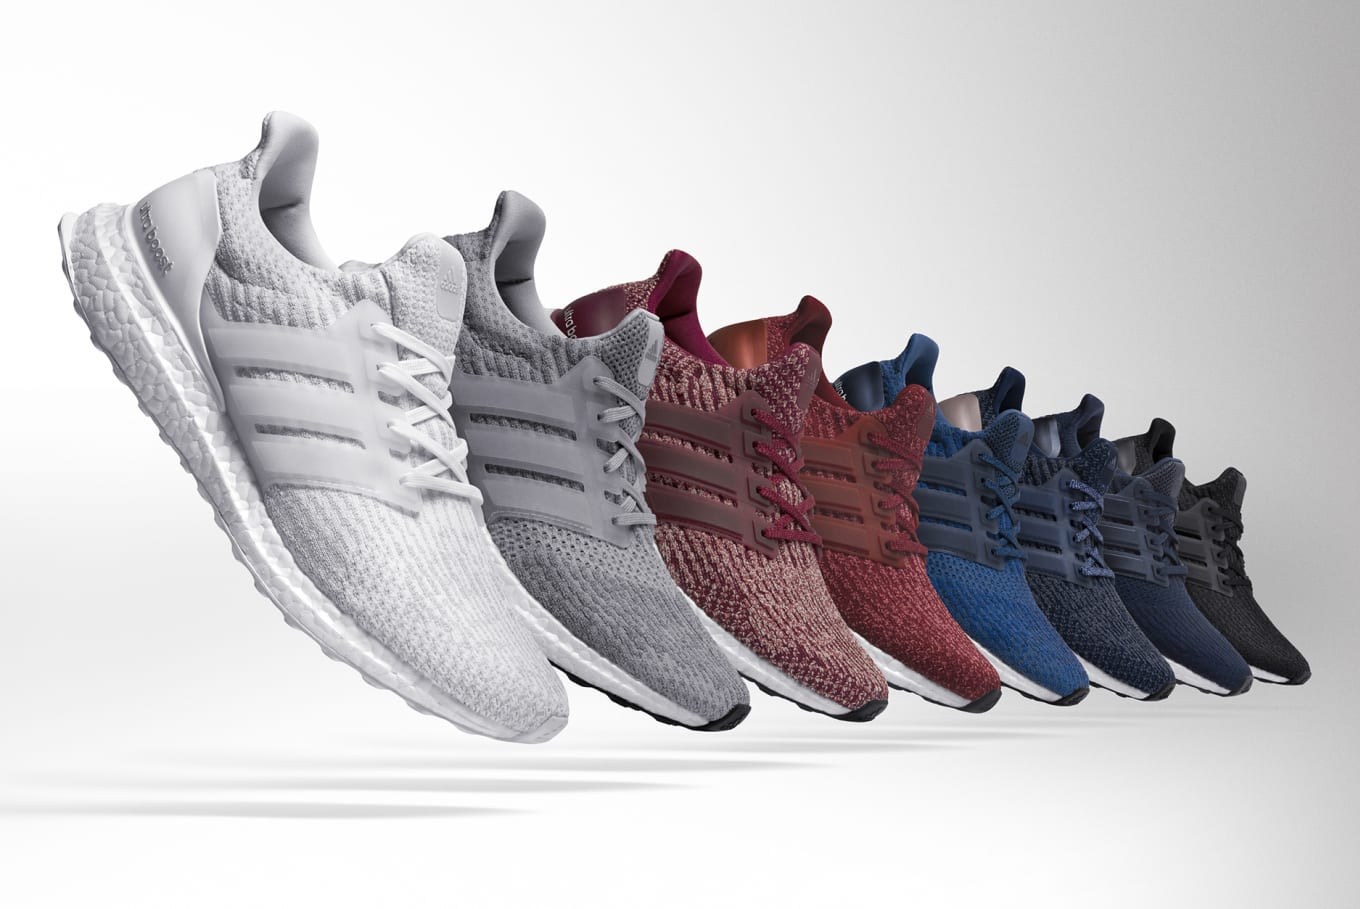 adidas Releases Official Images of its UltraBOOST 3.0